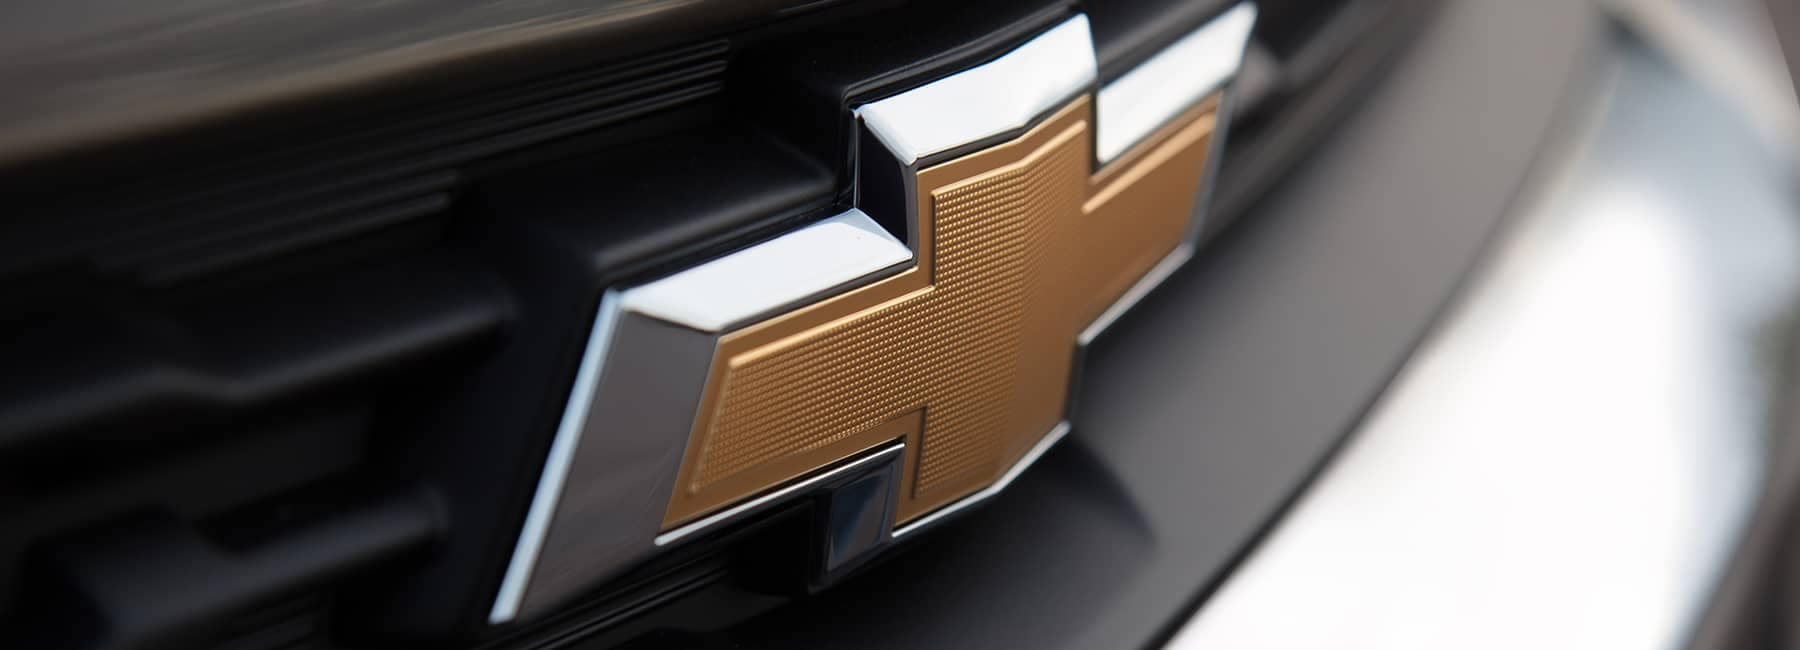 2021 Chevrolet Trailblazer Front Grille_mobile